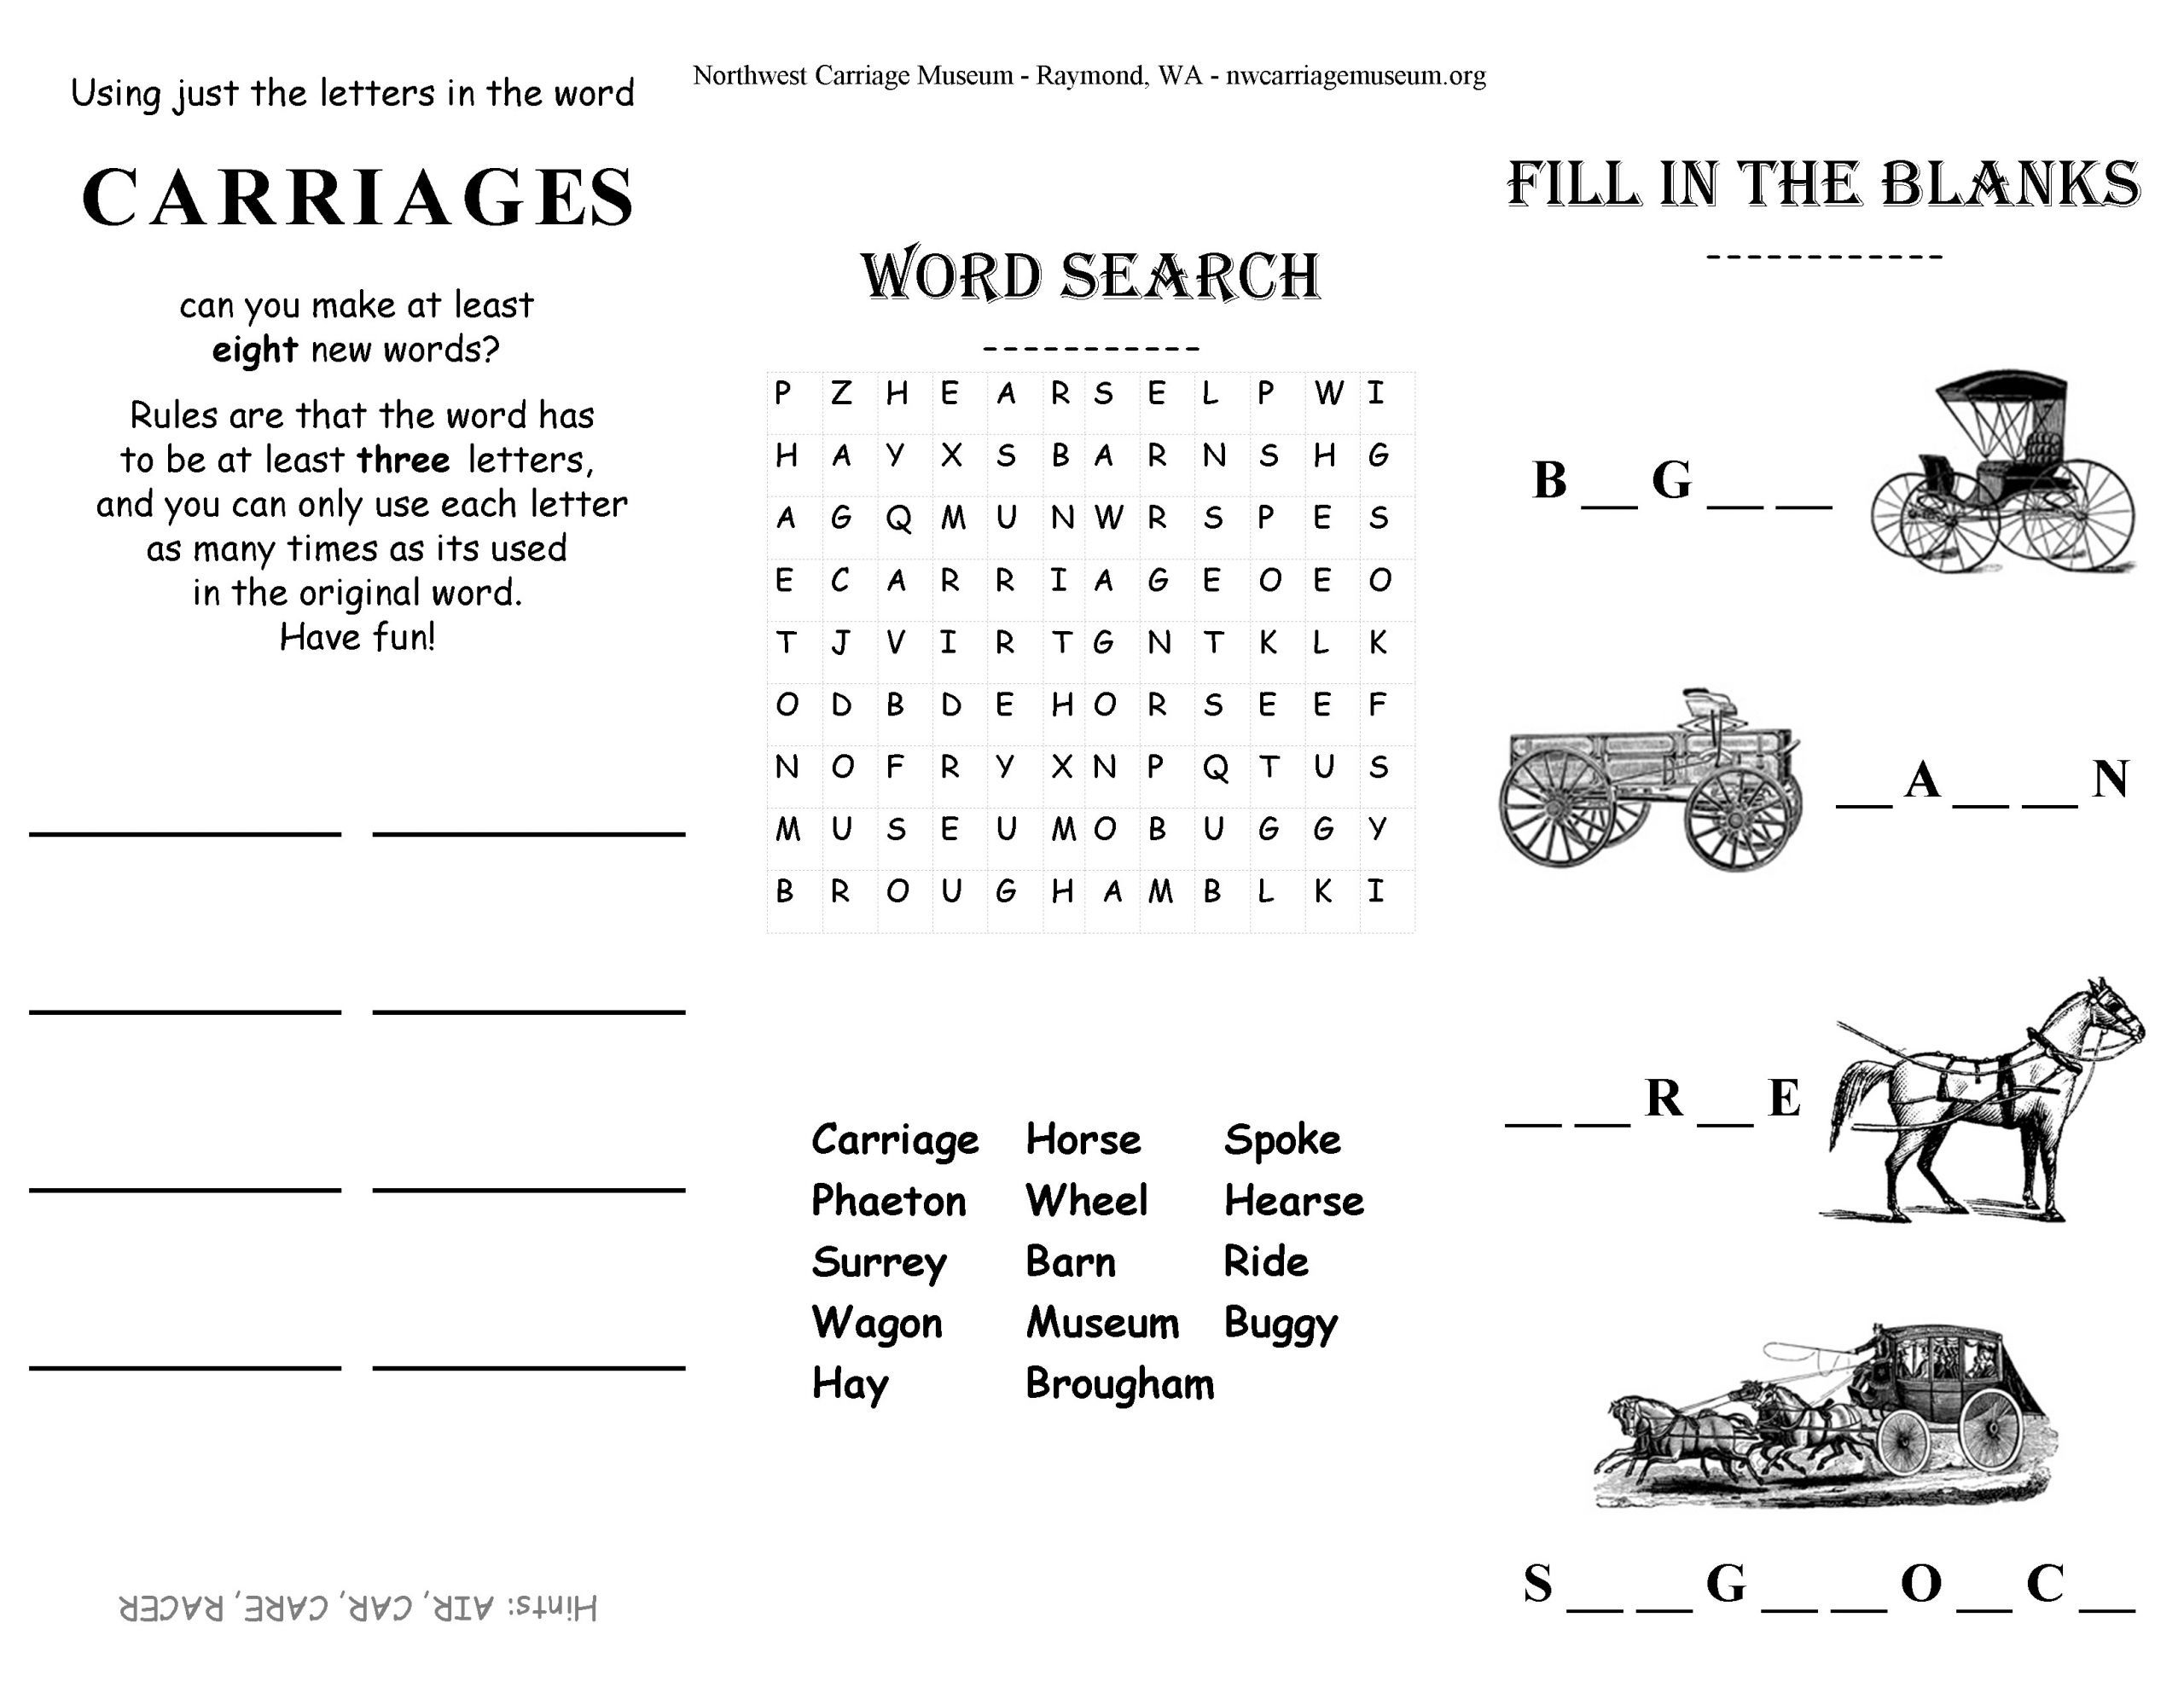 4 Printable Activities For 7 Year Olds In 2020 | Fun regarding Alphabet Worksheets For 7 Year Olds